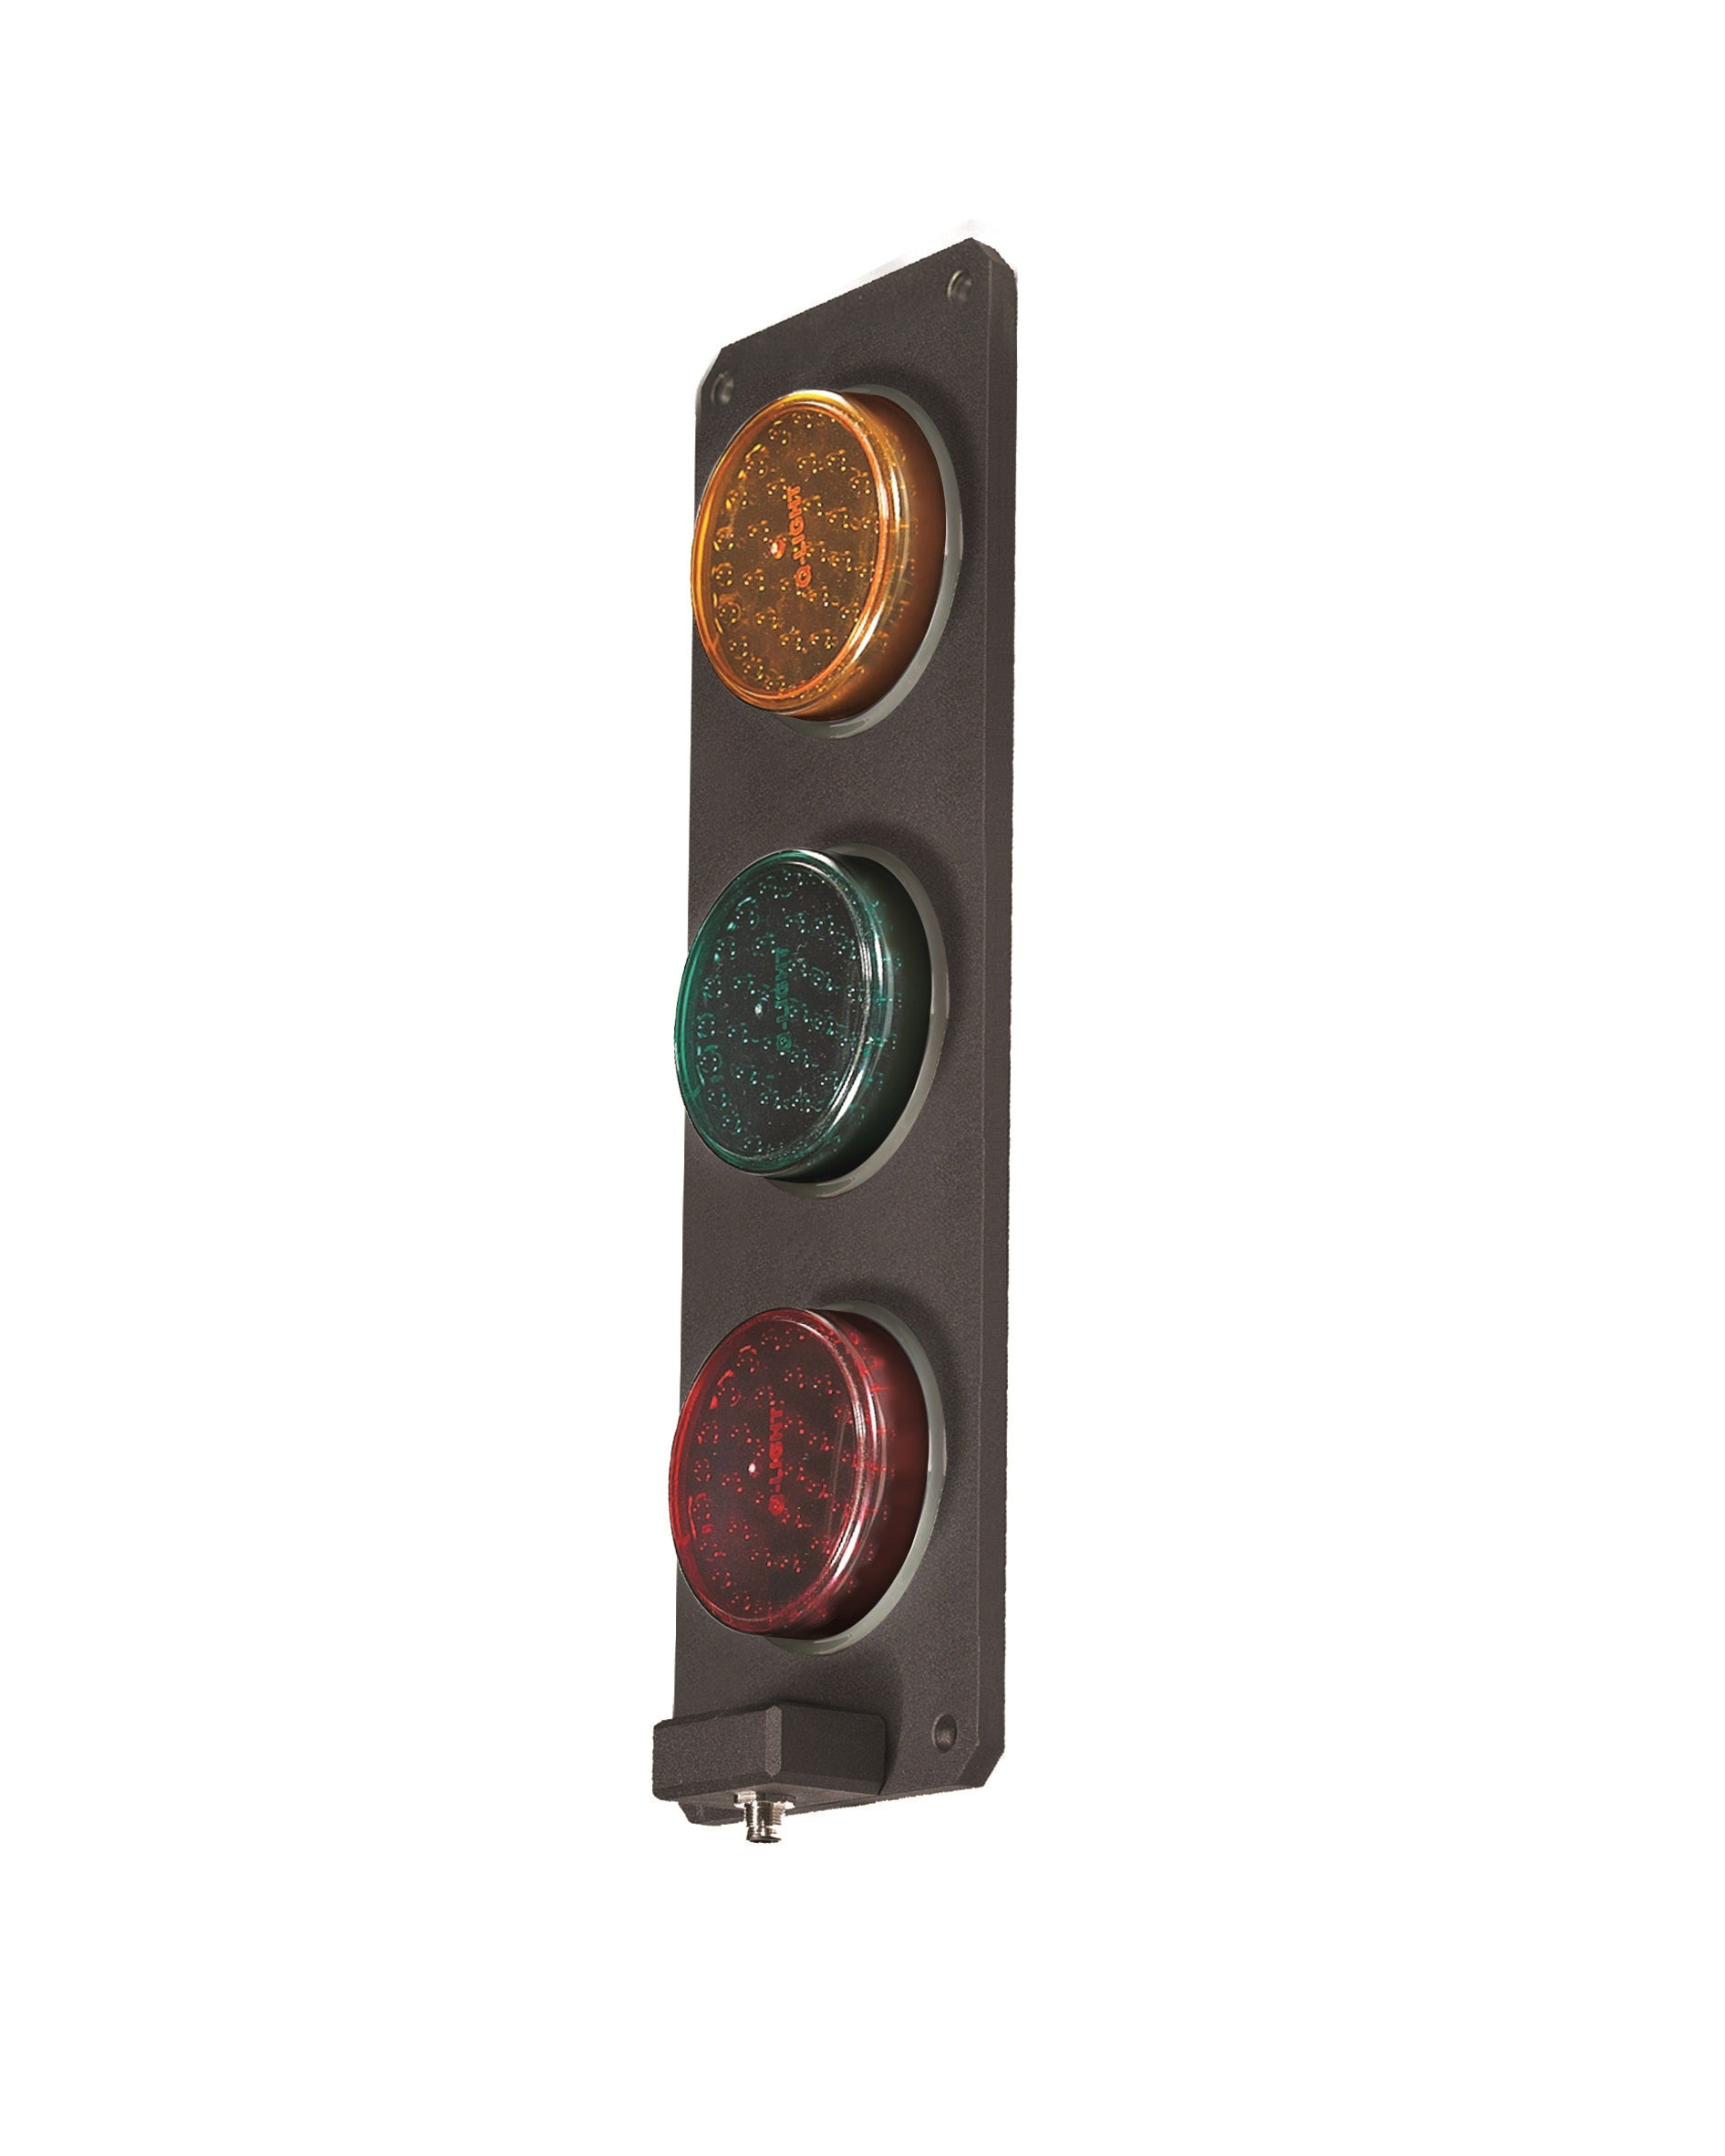 Qlight Qlight SSL300M 3 Aspect 92mm Surface Mount IP68 Metal Body LED Traffic Light - BNR Industrial